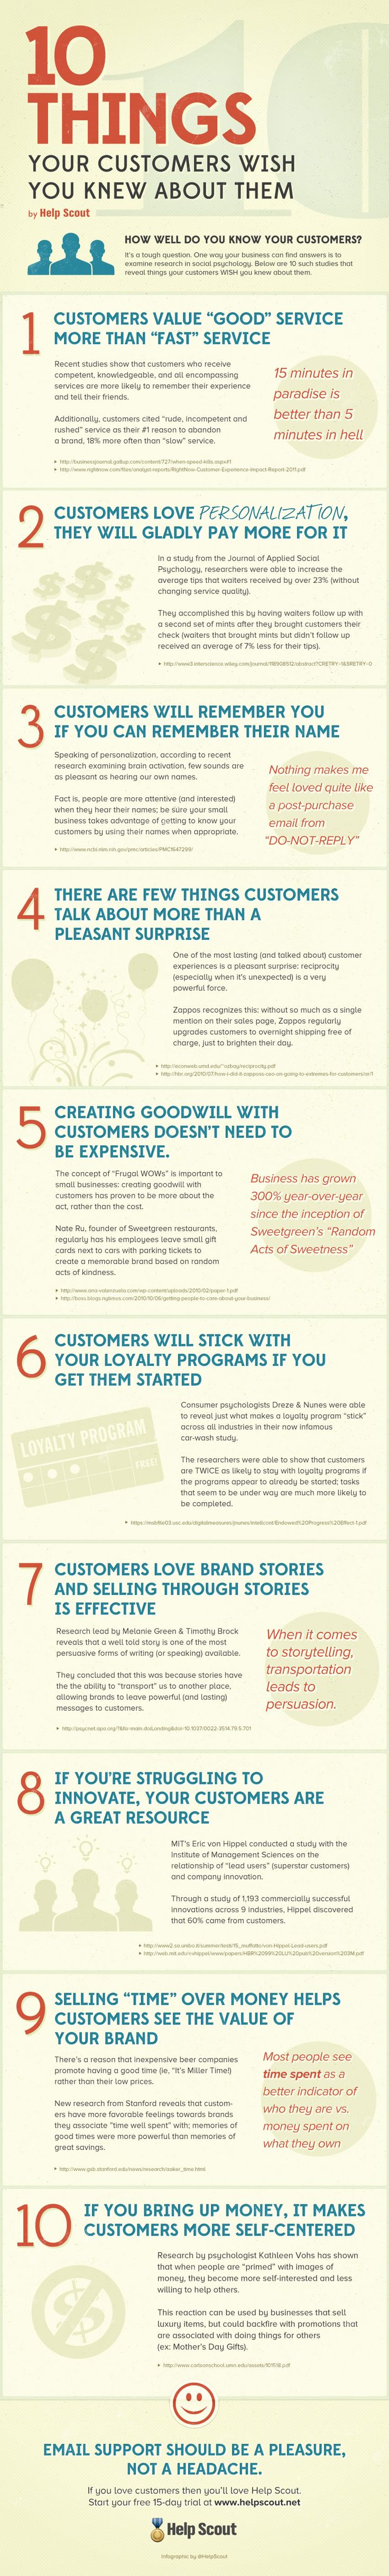 10 Things Your Customers Wish You Knew About Them   Infographic by Helpscout